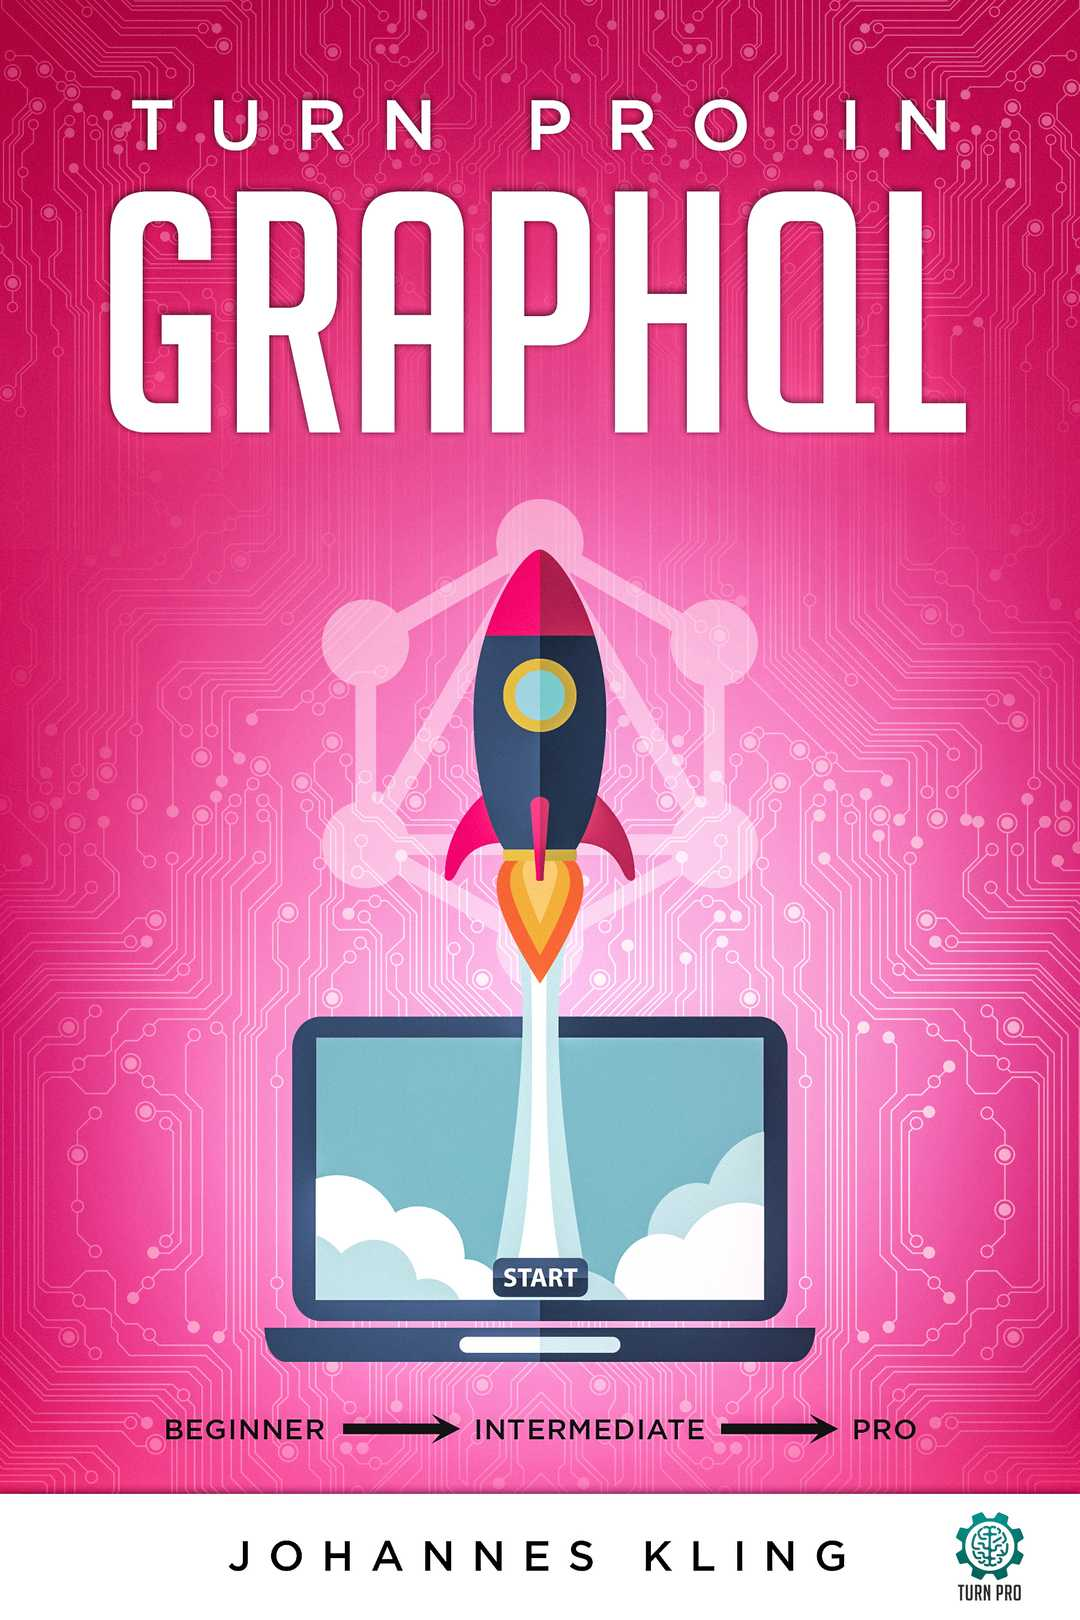 Turn Pro in GraphQL. Ebook by Johannes Kling